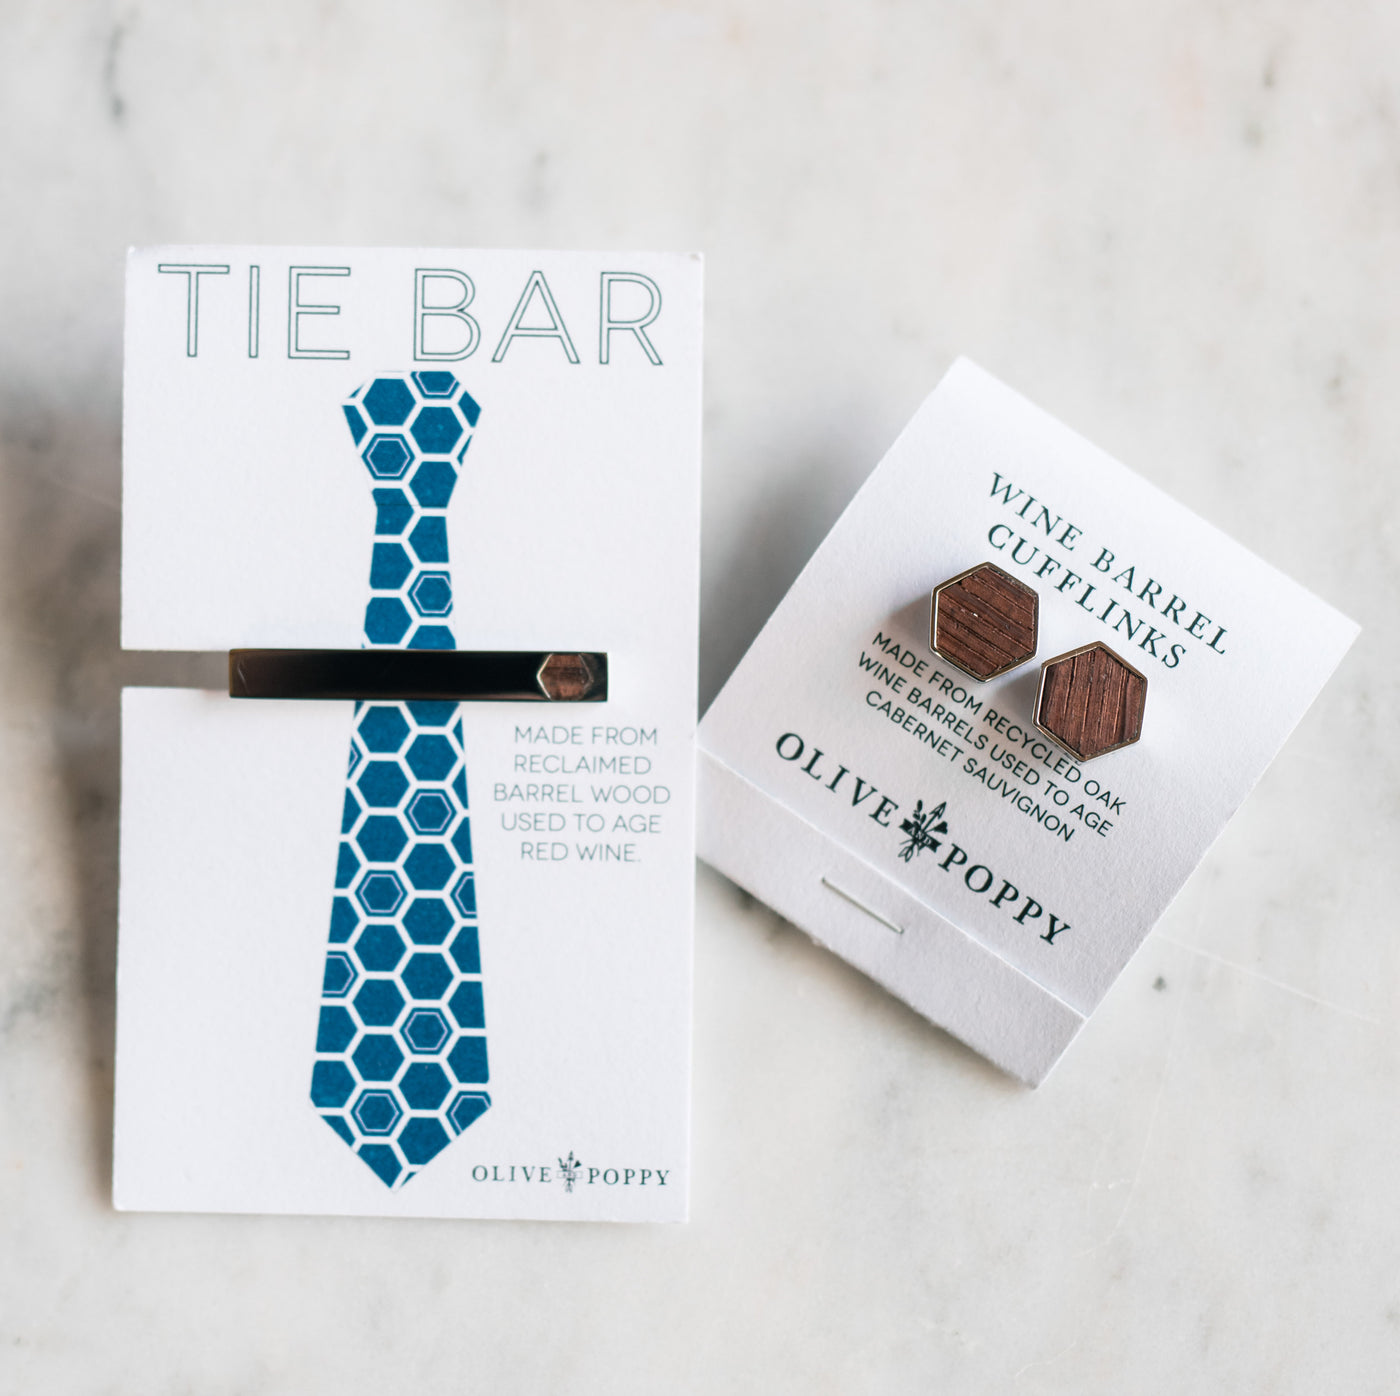 Barrel Cufflink and Tie Bar Gift Set - Olive and Poppy